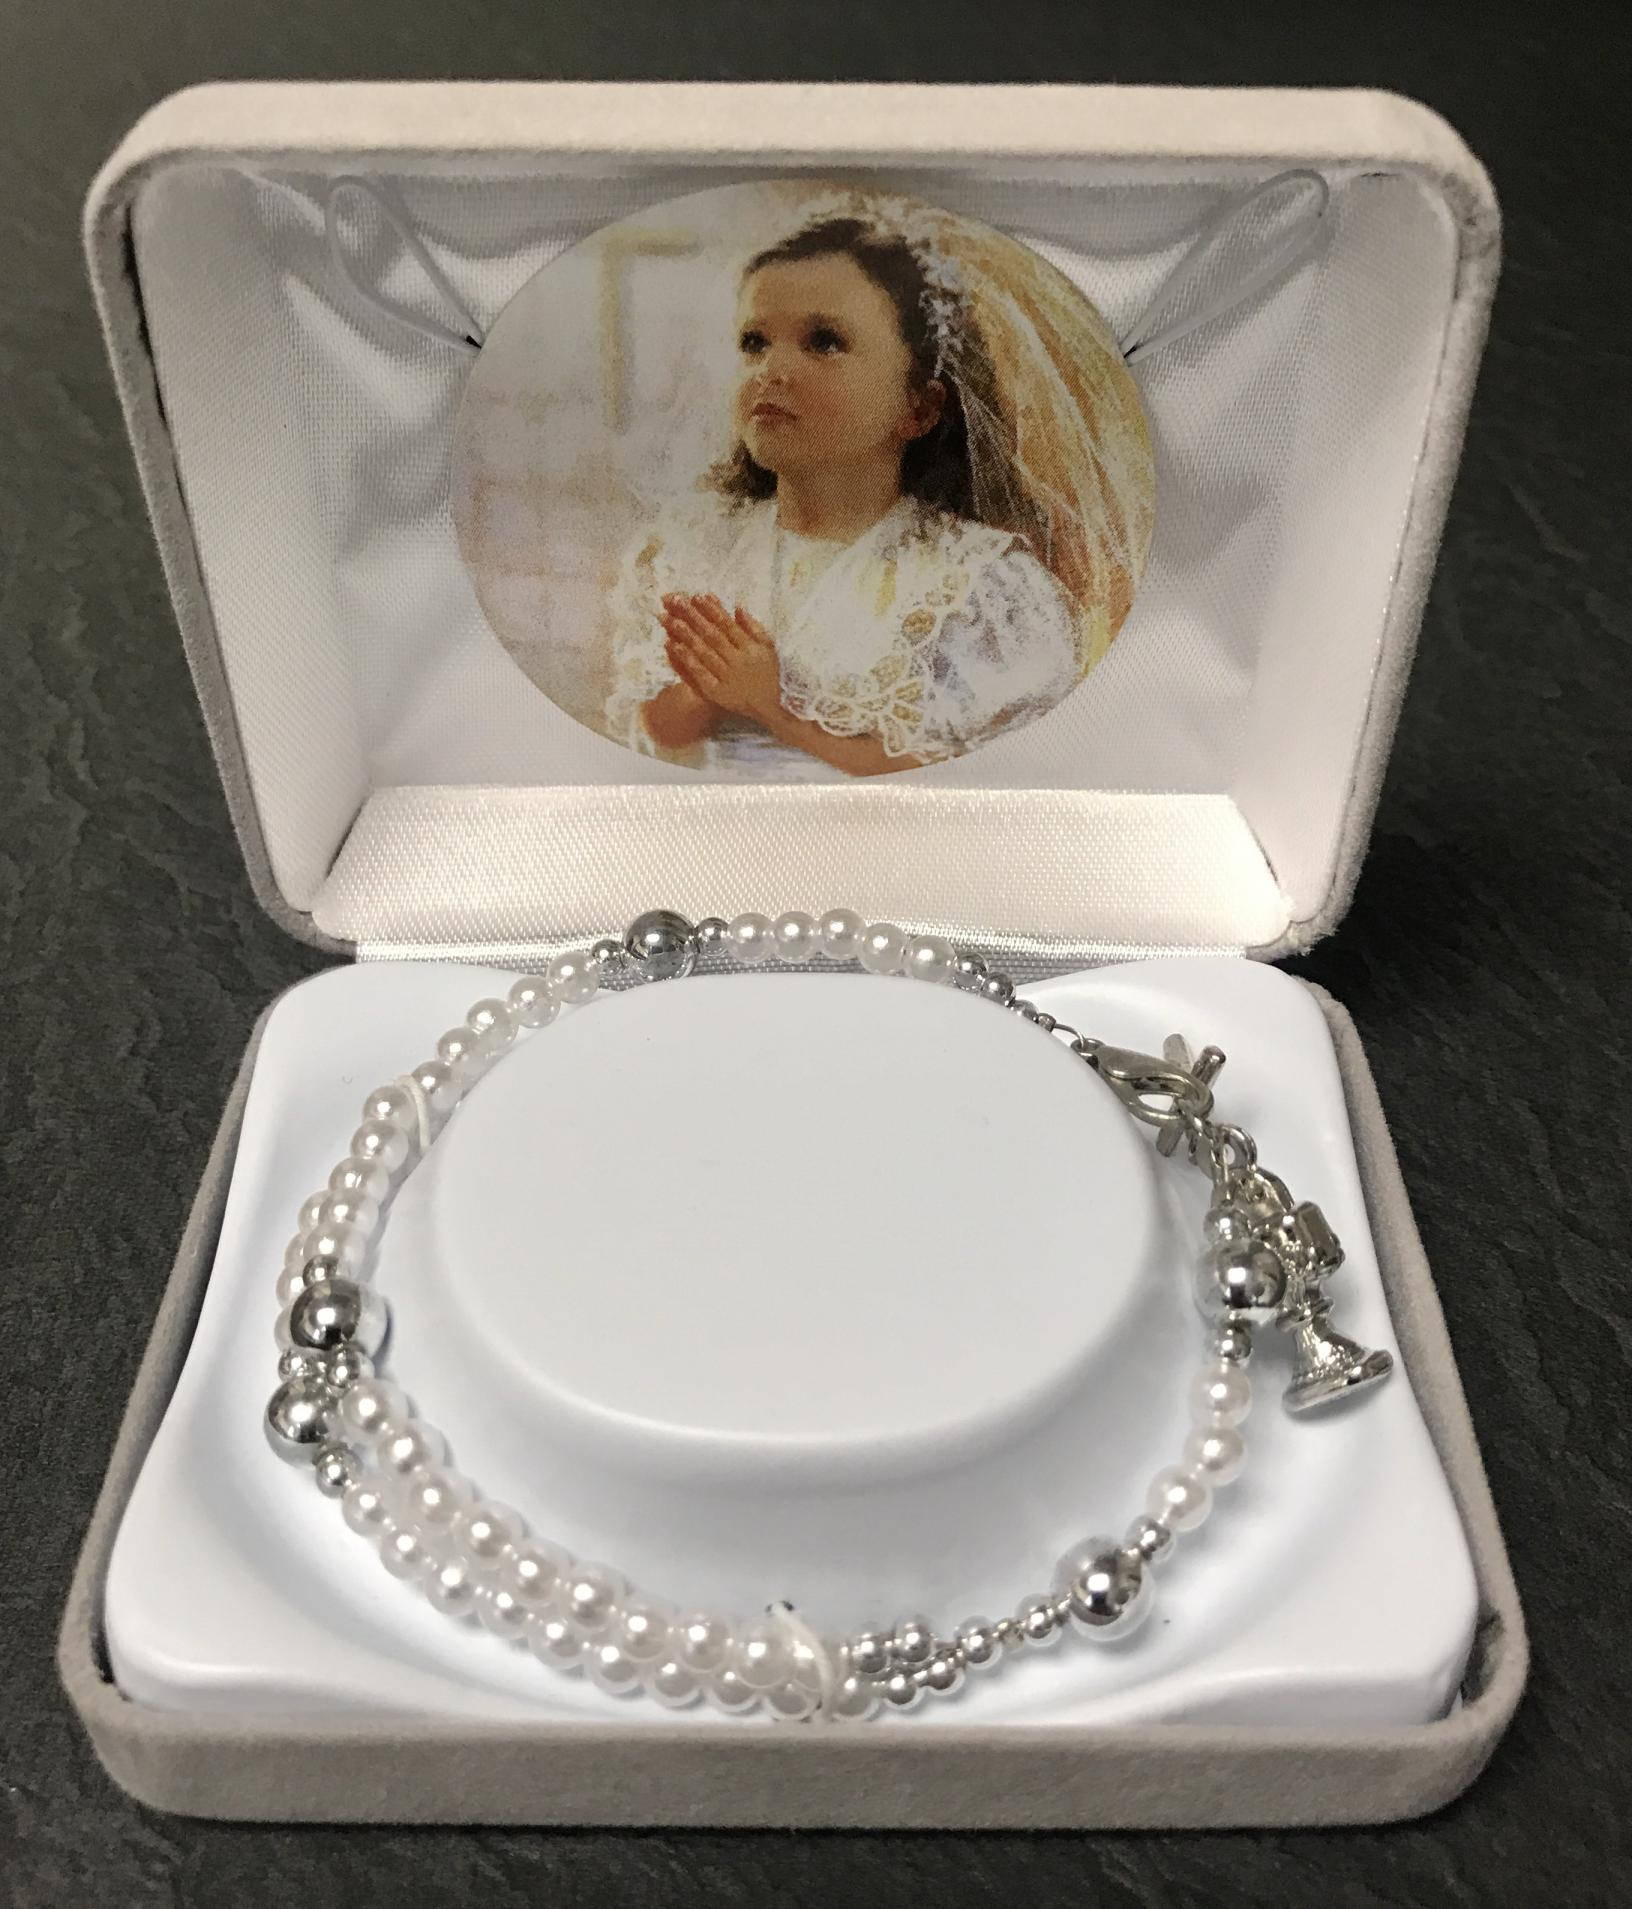 PEARL 59 BEAD FC BRACELET GIFT BOXED